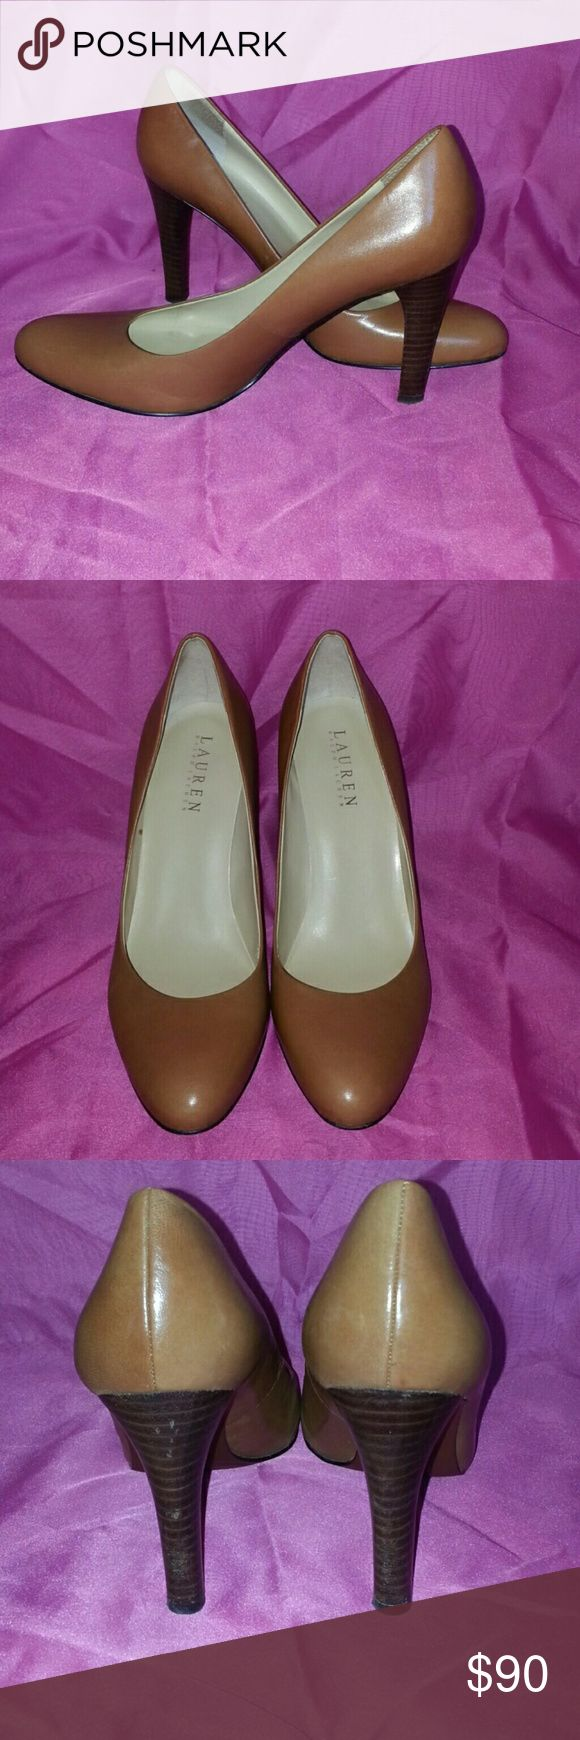 "Ralph Lauren Tan Pumps 8 M Lightly used. Scuff on back of one heel. 3.75"" heel.  Excellent condition!  💲💲 BUNDLE & SAVE 💲💲 I have several different styles in a 8 Ralph Lauren Shoes Heels"